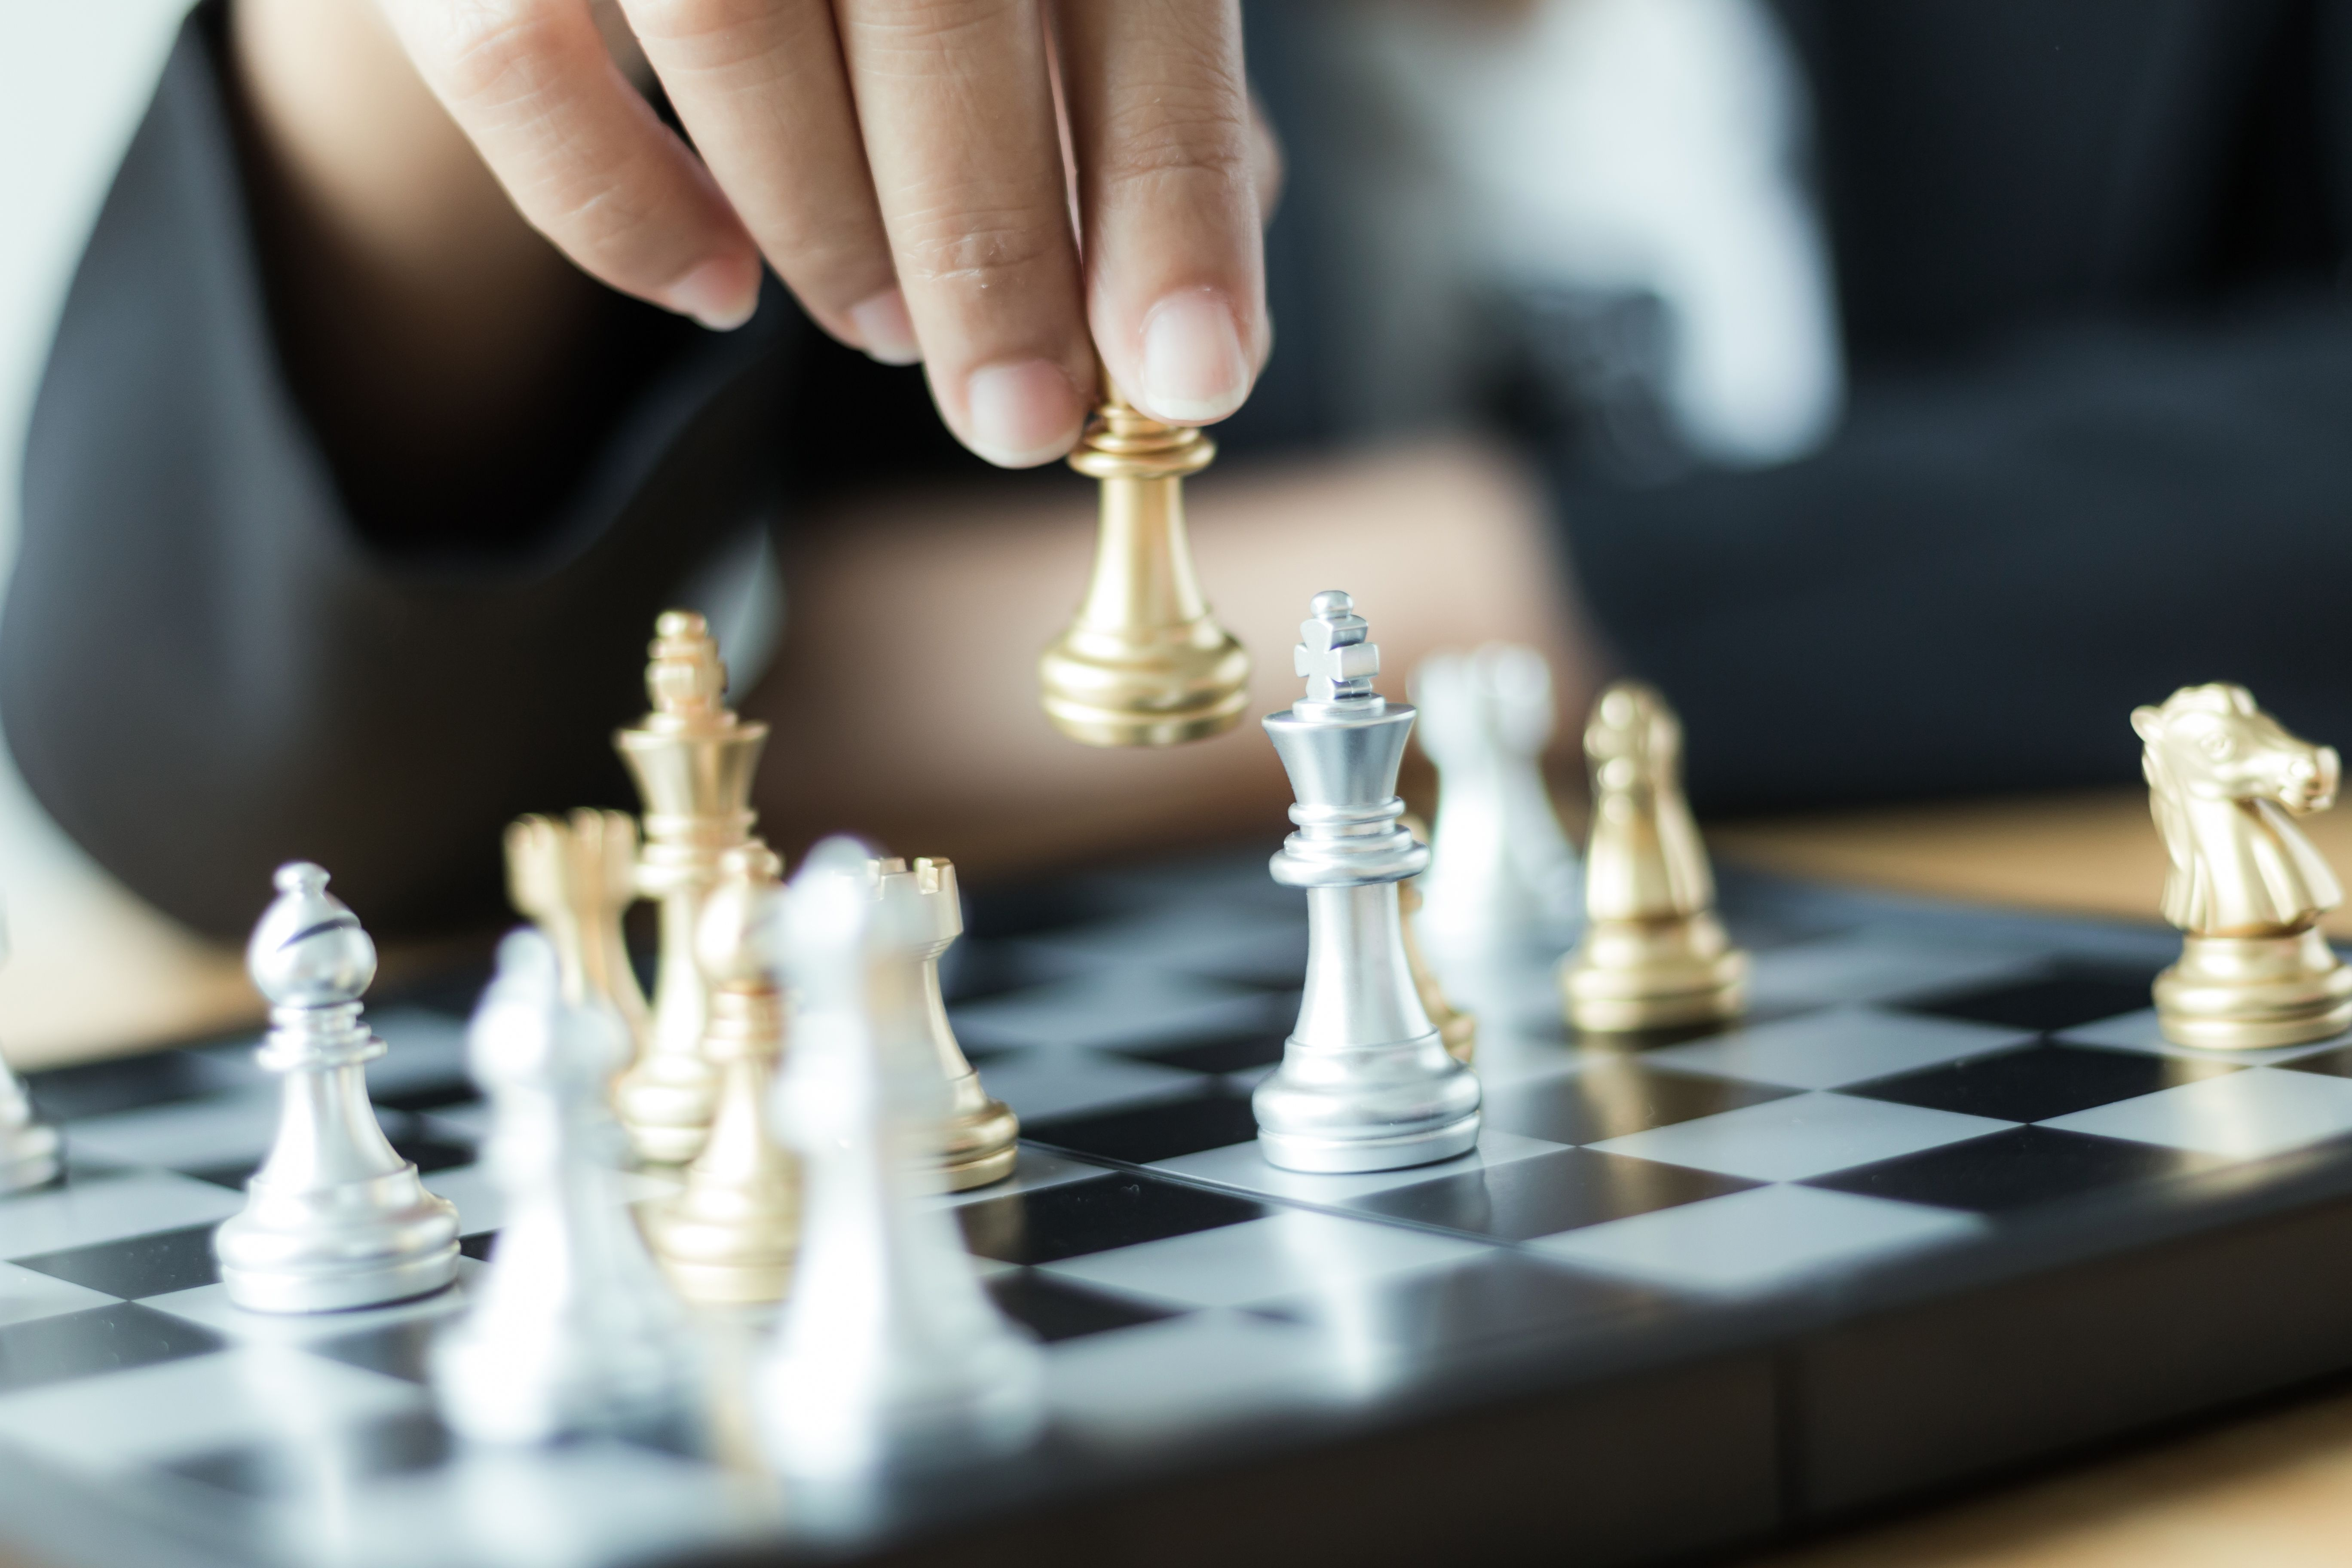 Basic Rules of Tournament Chess